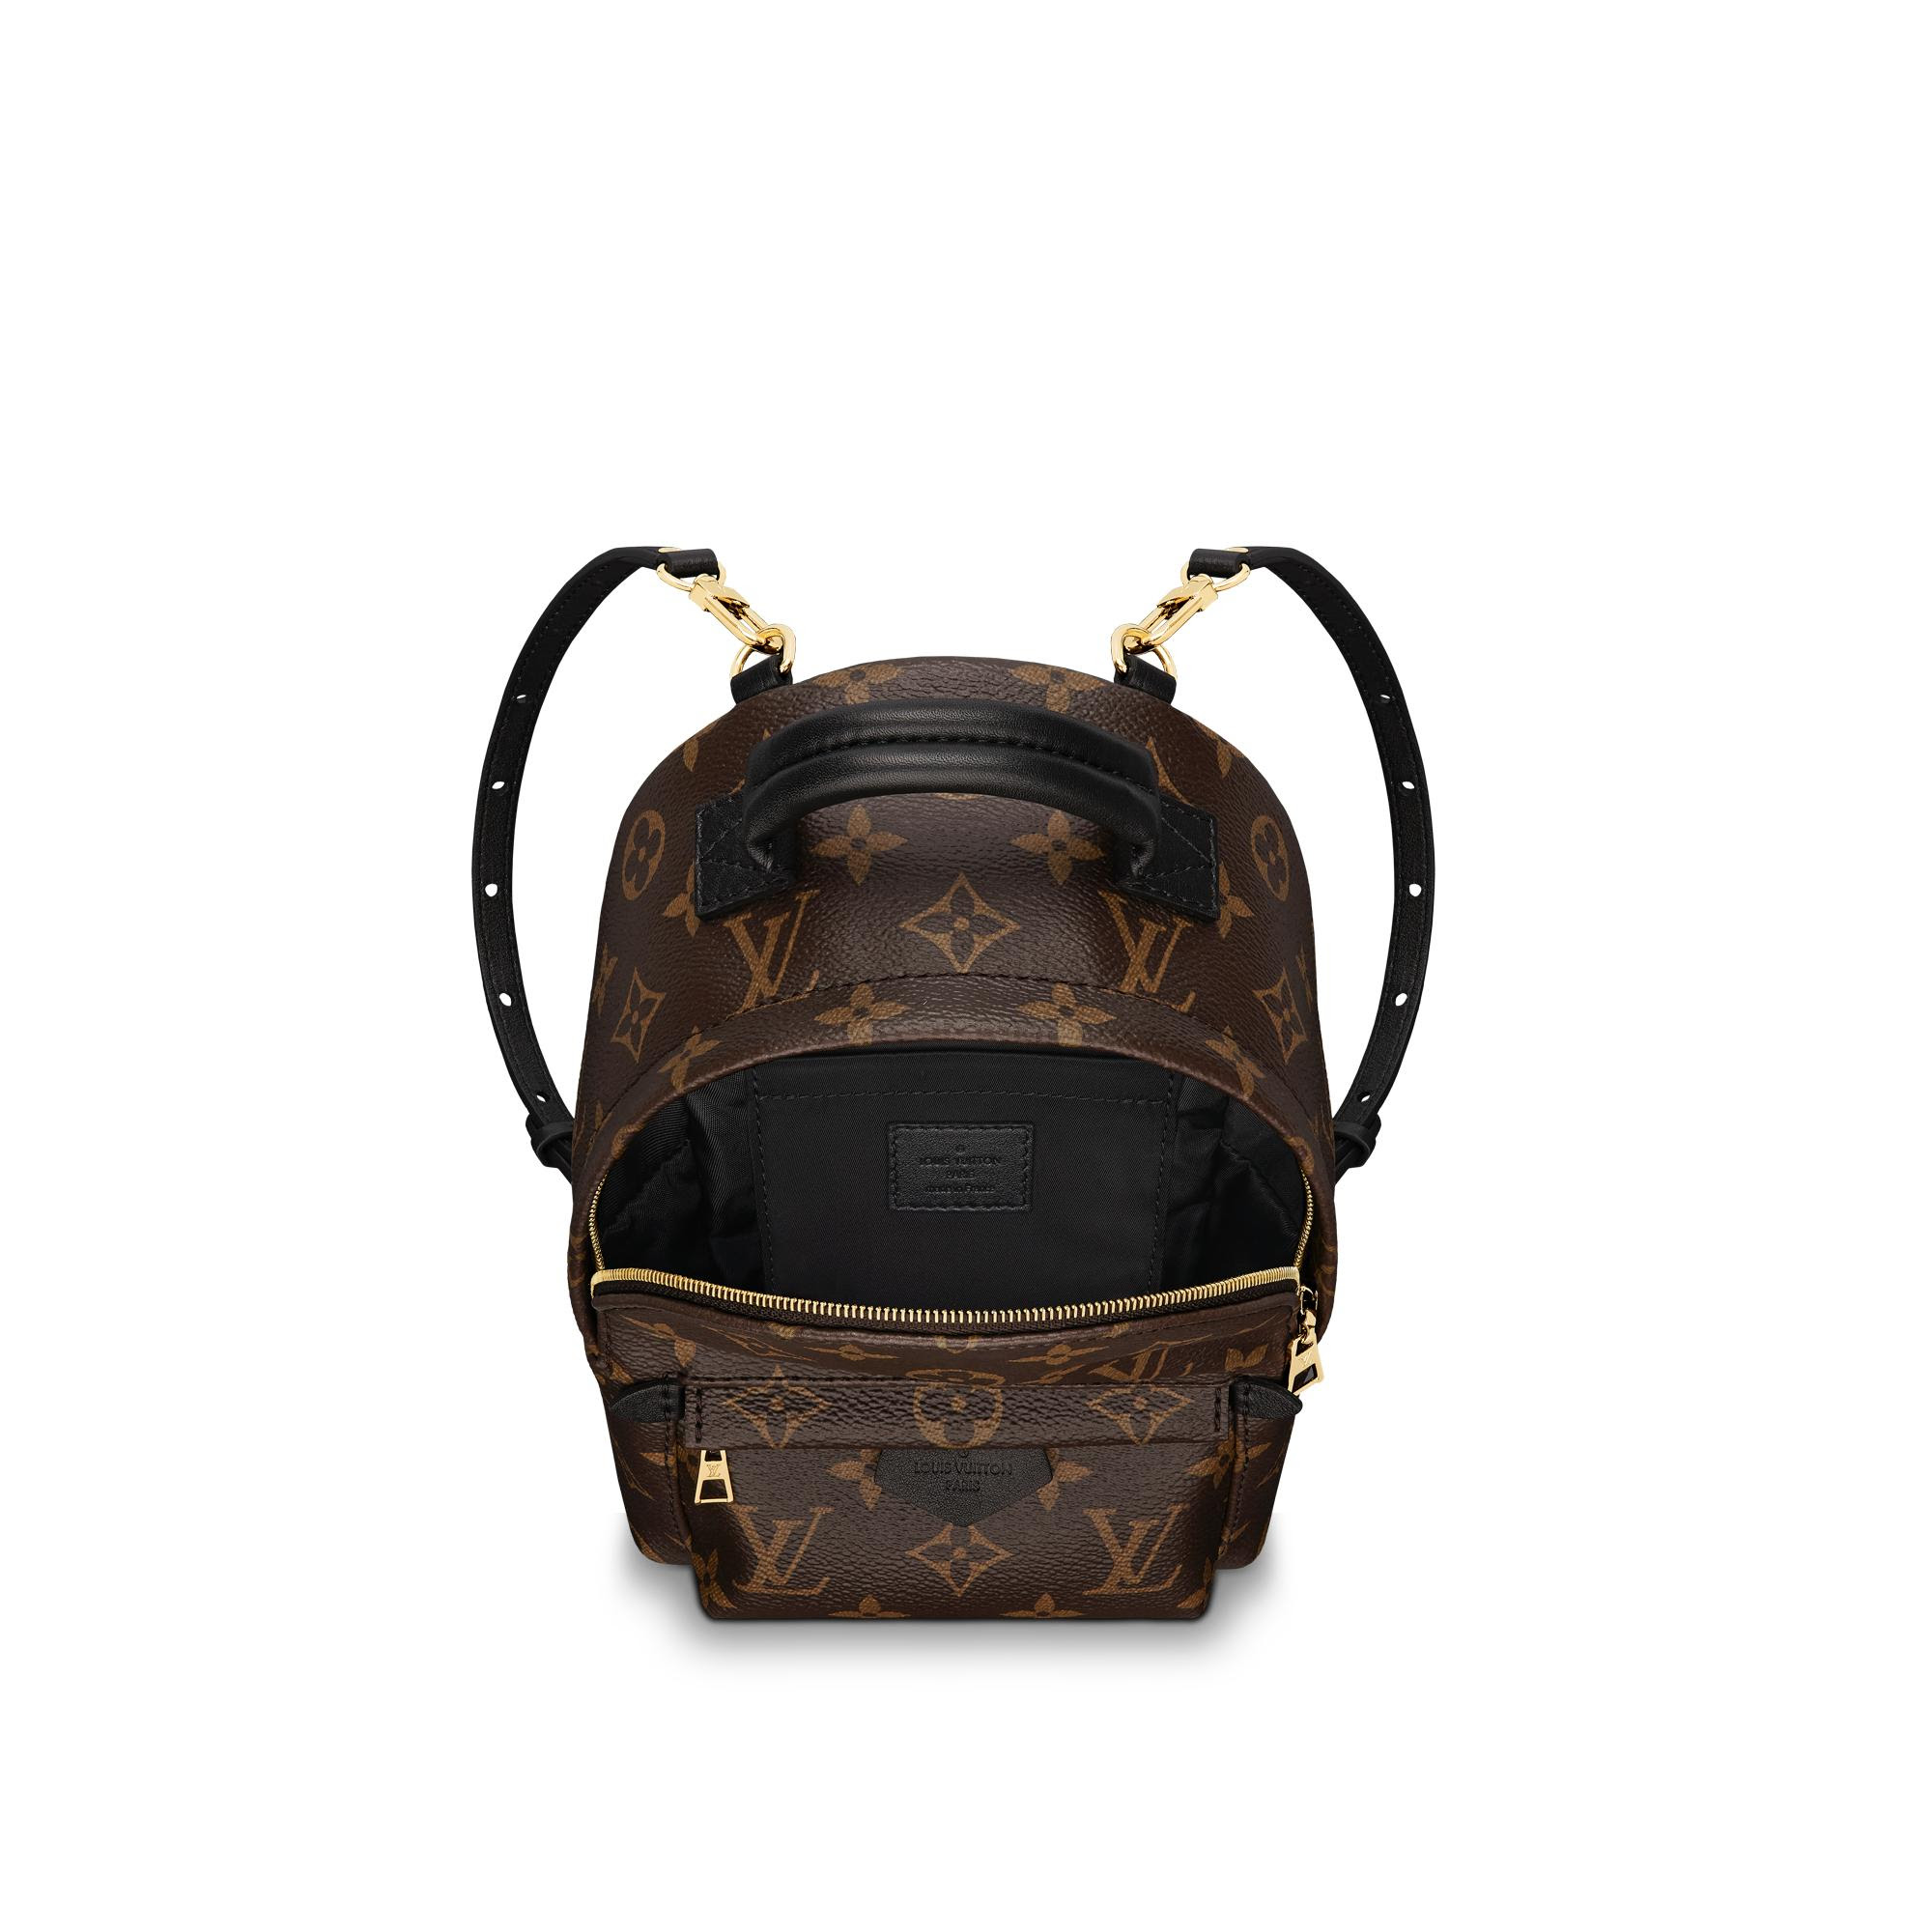 Image result for lv palm springs backpack mini